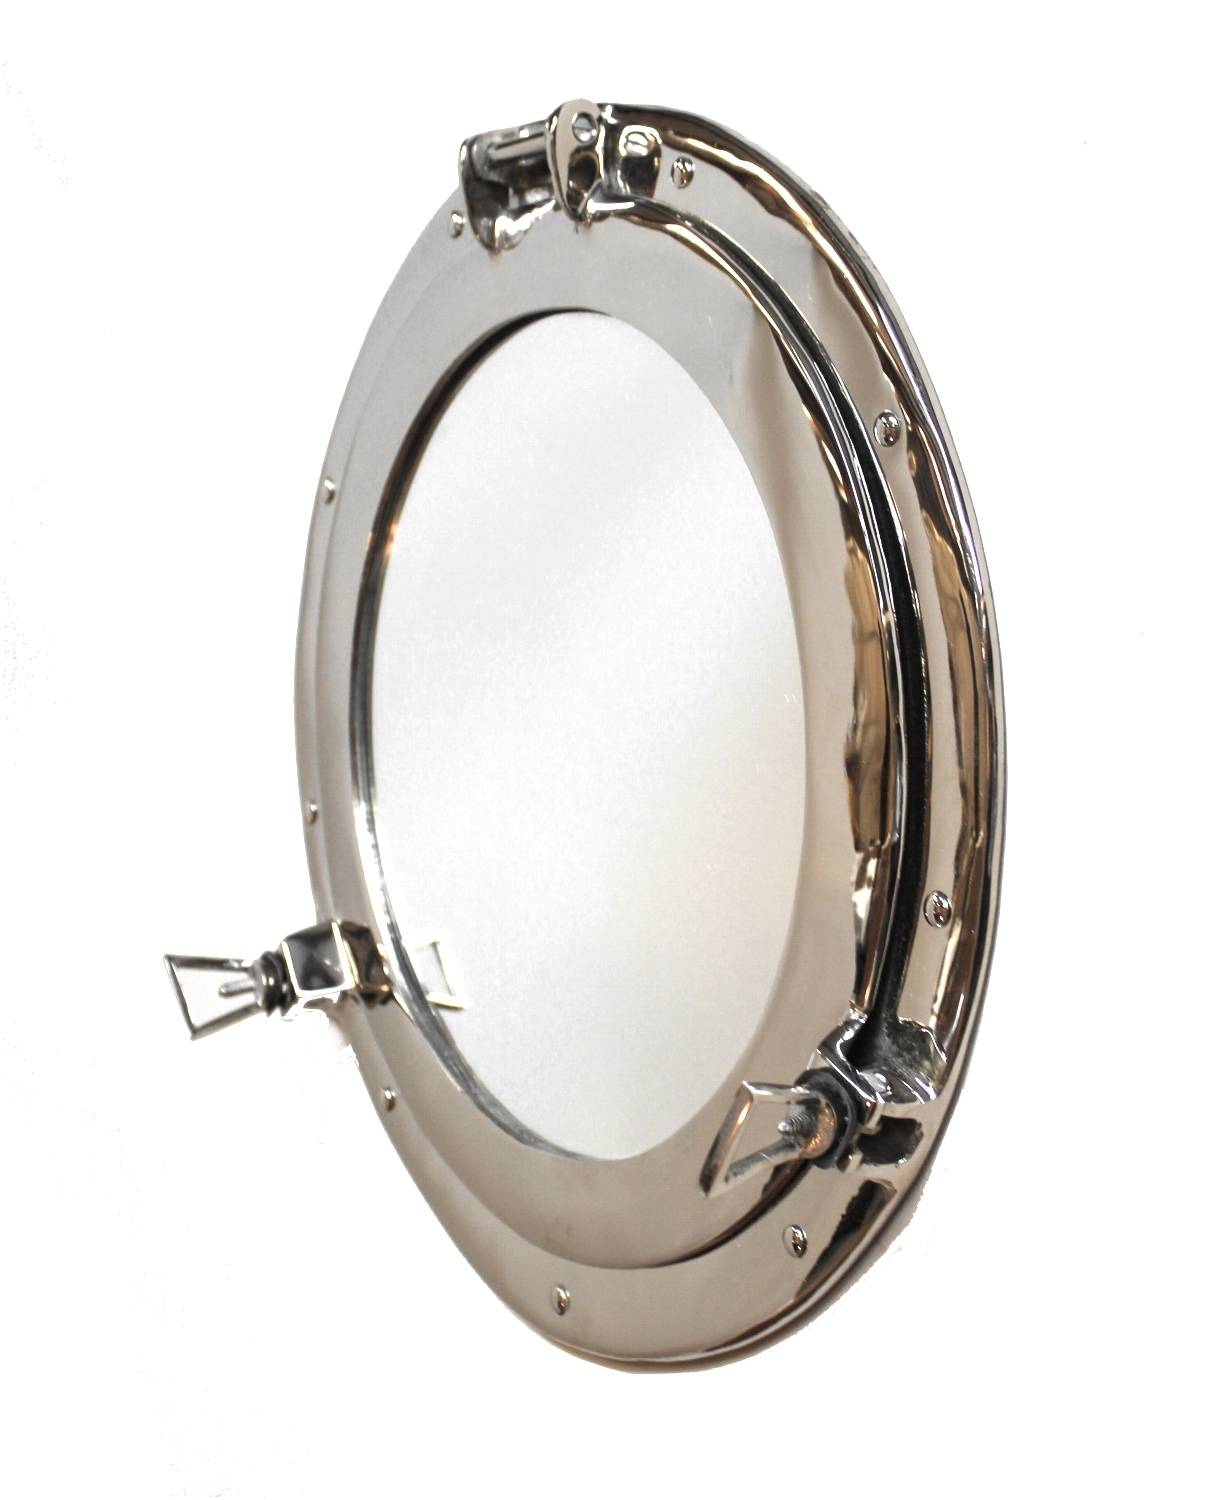 Silver Bedroom Bathroom Mirror Swivel Mount Bamboo Edge Throughout Chrome Porthole Mirror (Image 13 of 15)